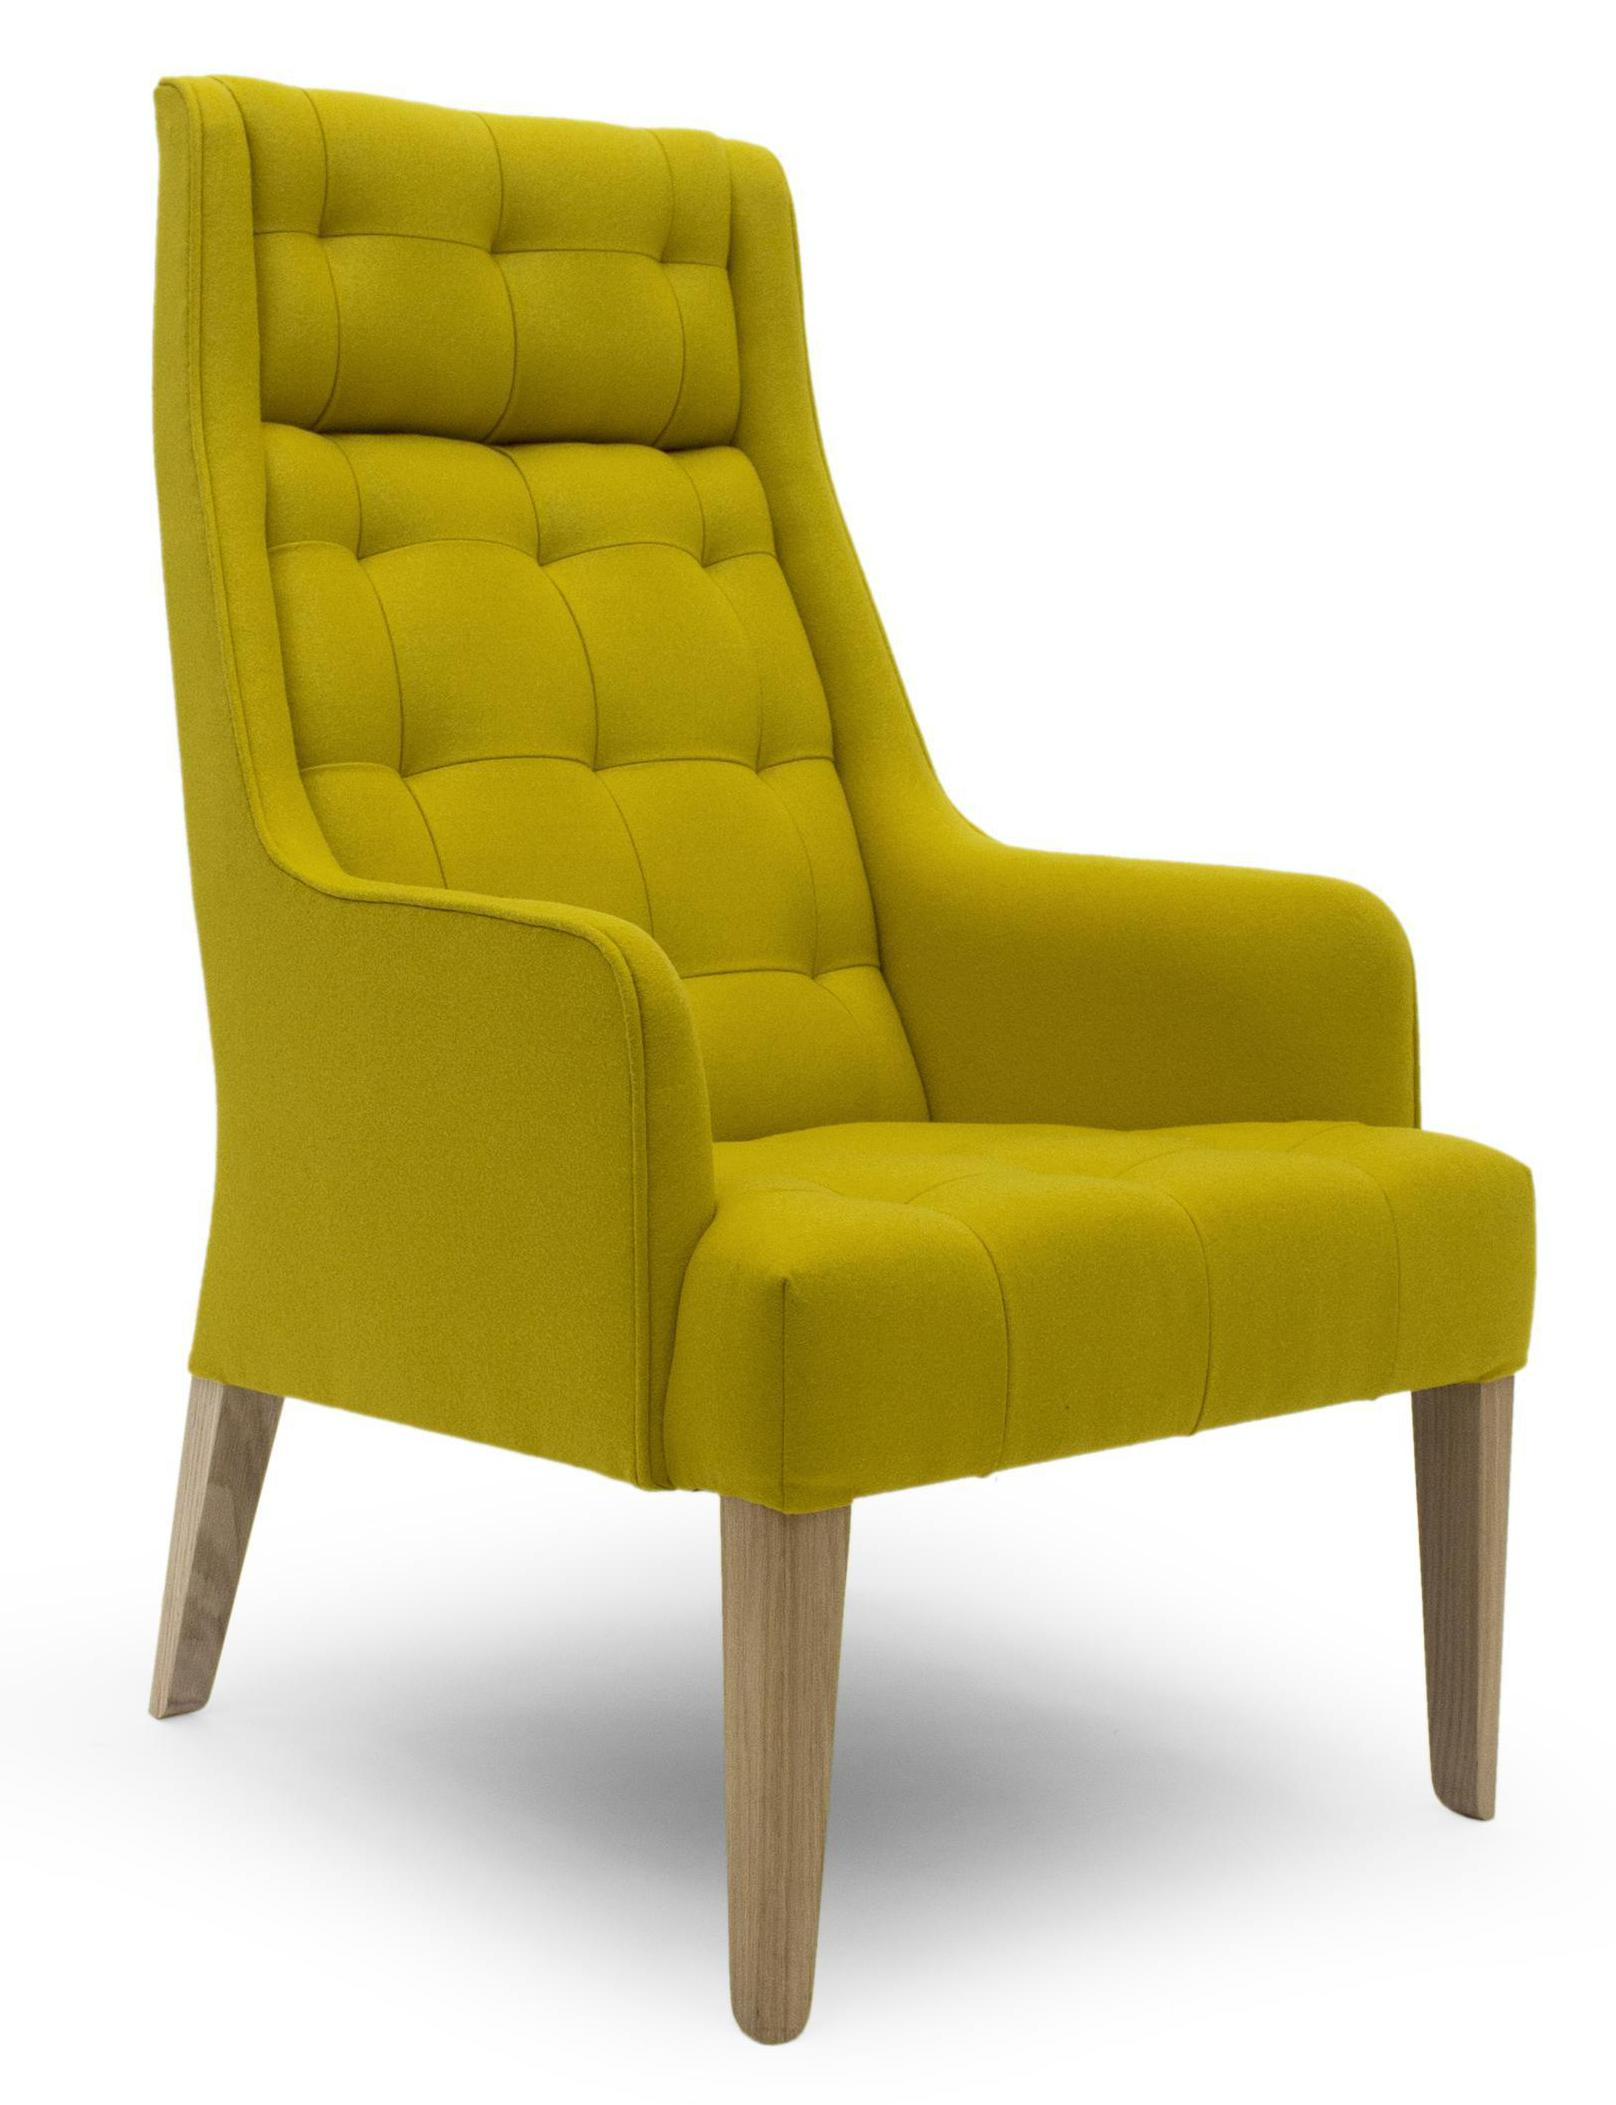 2019 Norton High Backjames Uk In Armchairs Pertaining To James Armchairs (View 9 of 20)